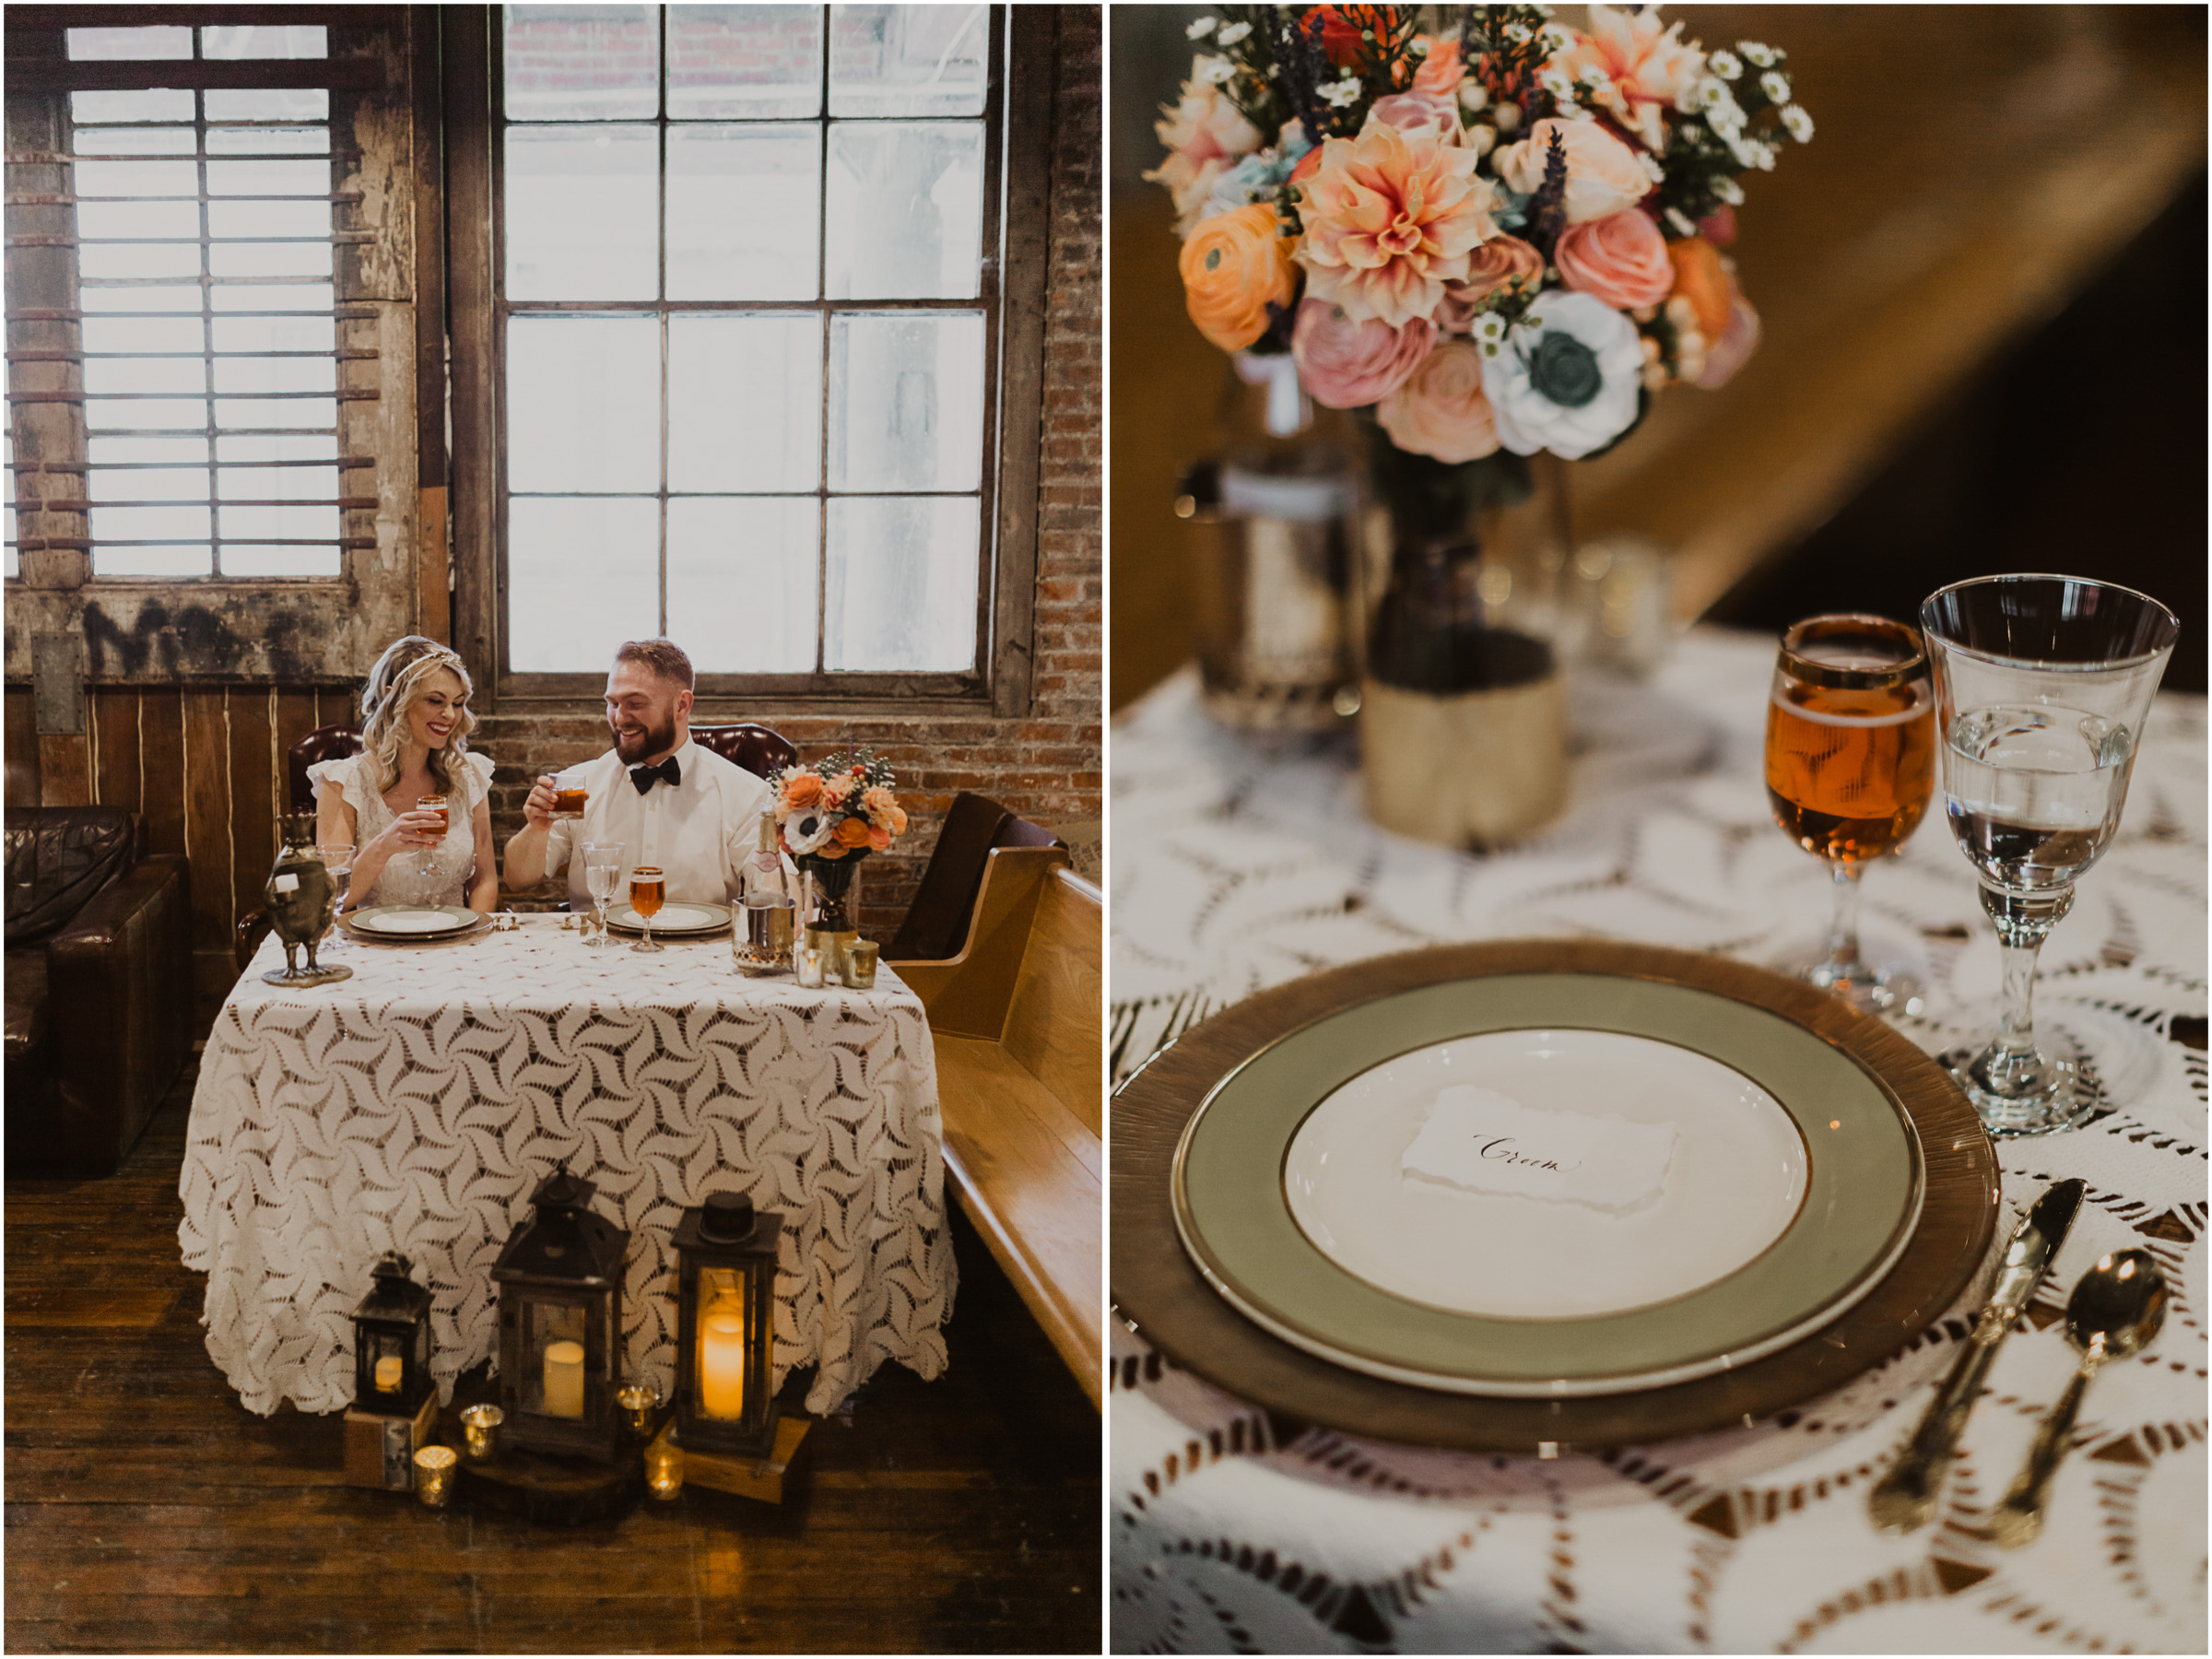 alyssa barletter photography styled shoot wedding inspiration kansas city west bottoms photographer motorcycle edgy intimate-4.jpg